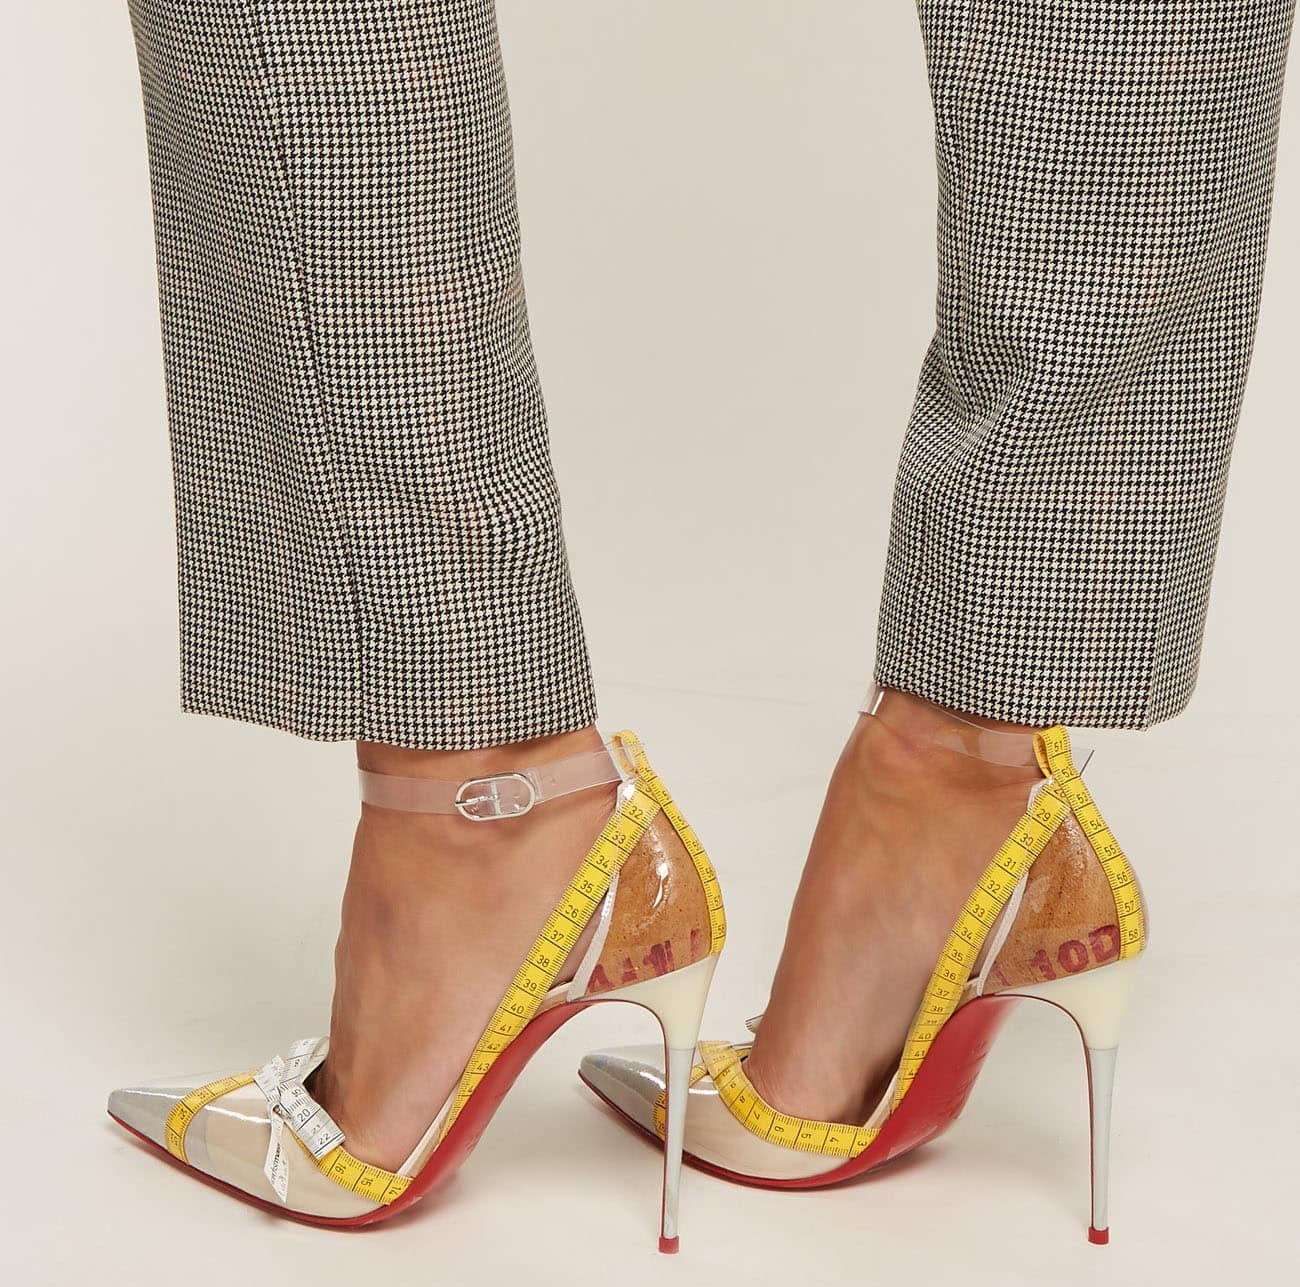 The Christian Louboutin Metripump stiletto pumps have tailoring tape on the edges and toes as a nod to the label's Parisian atelier